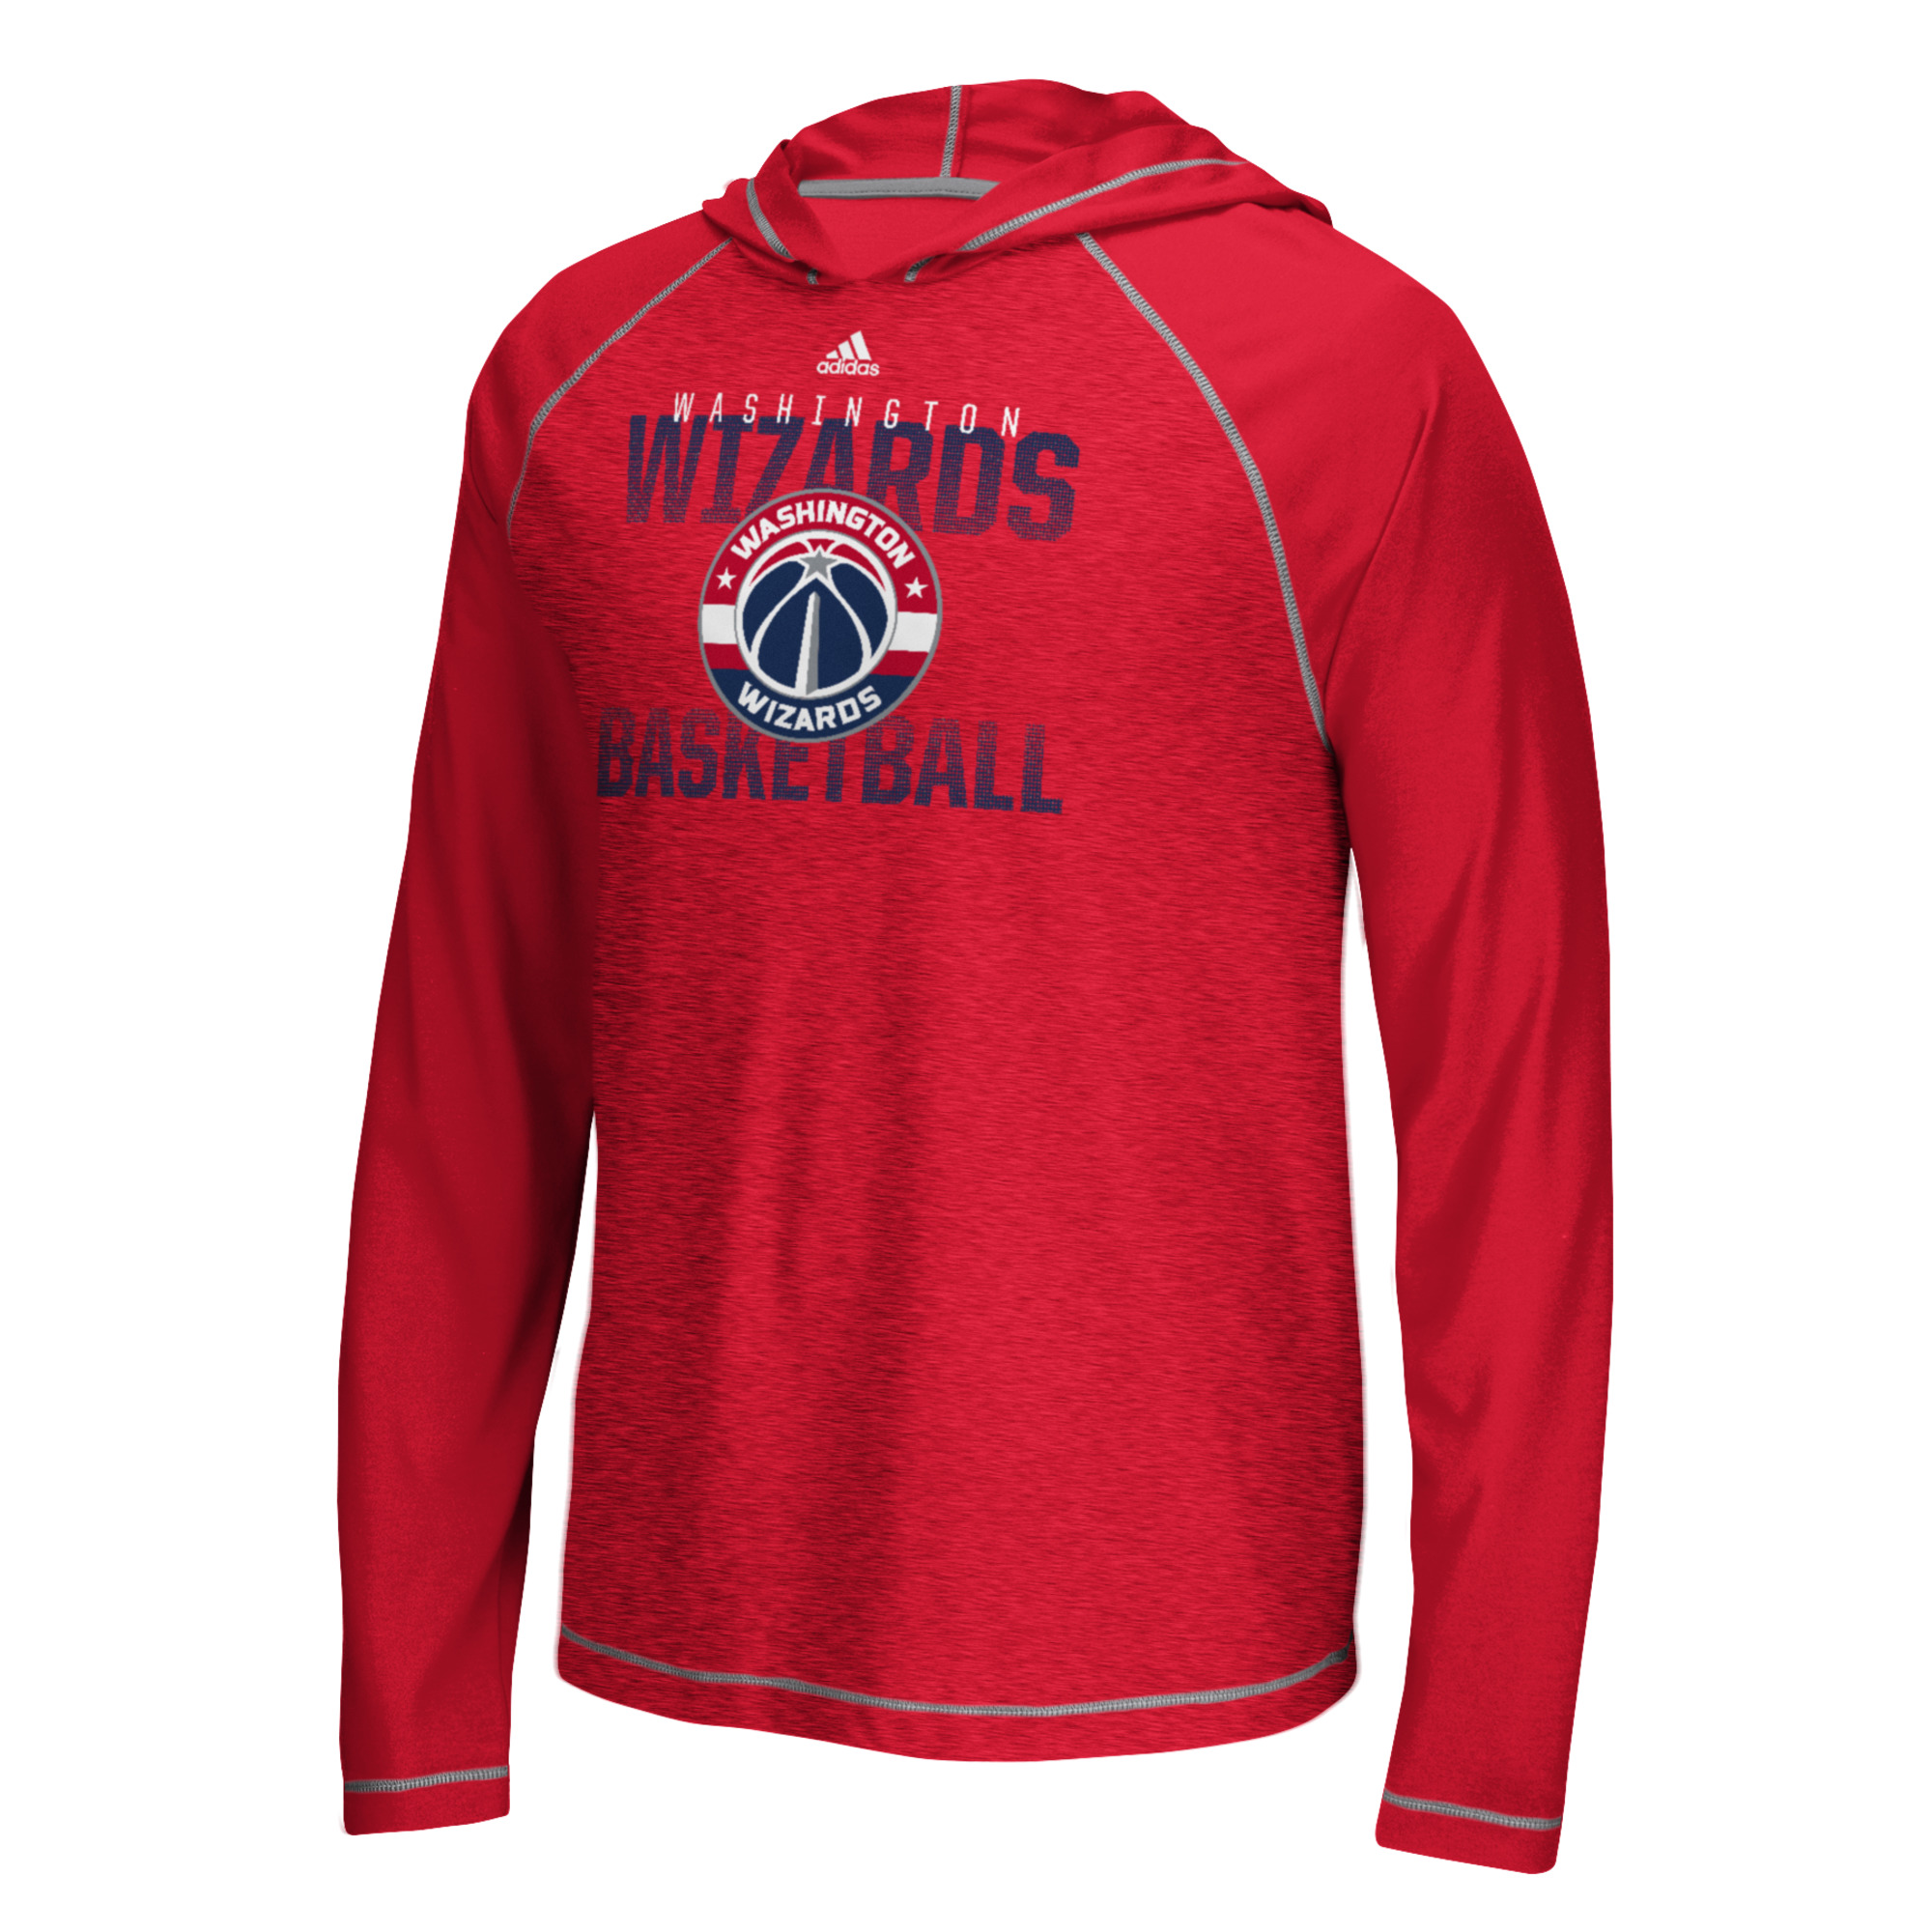 "Washington Wizards Adidas NBA ""Fade Away"" Men's Climalite Hooded L/S Shirt"